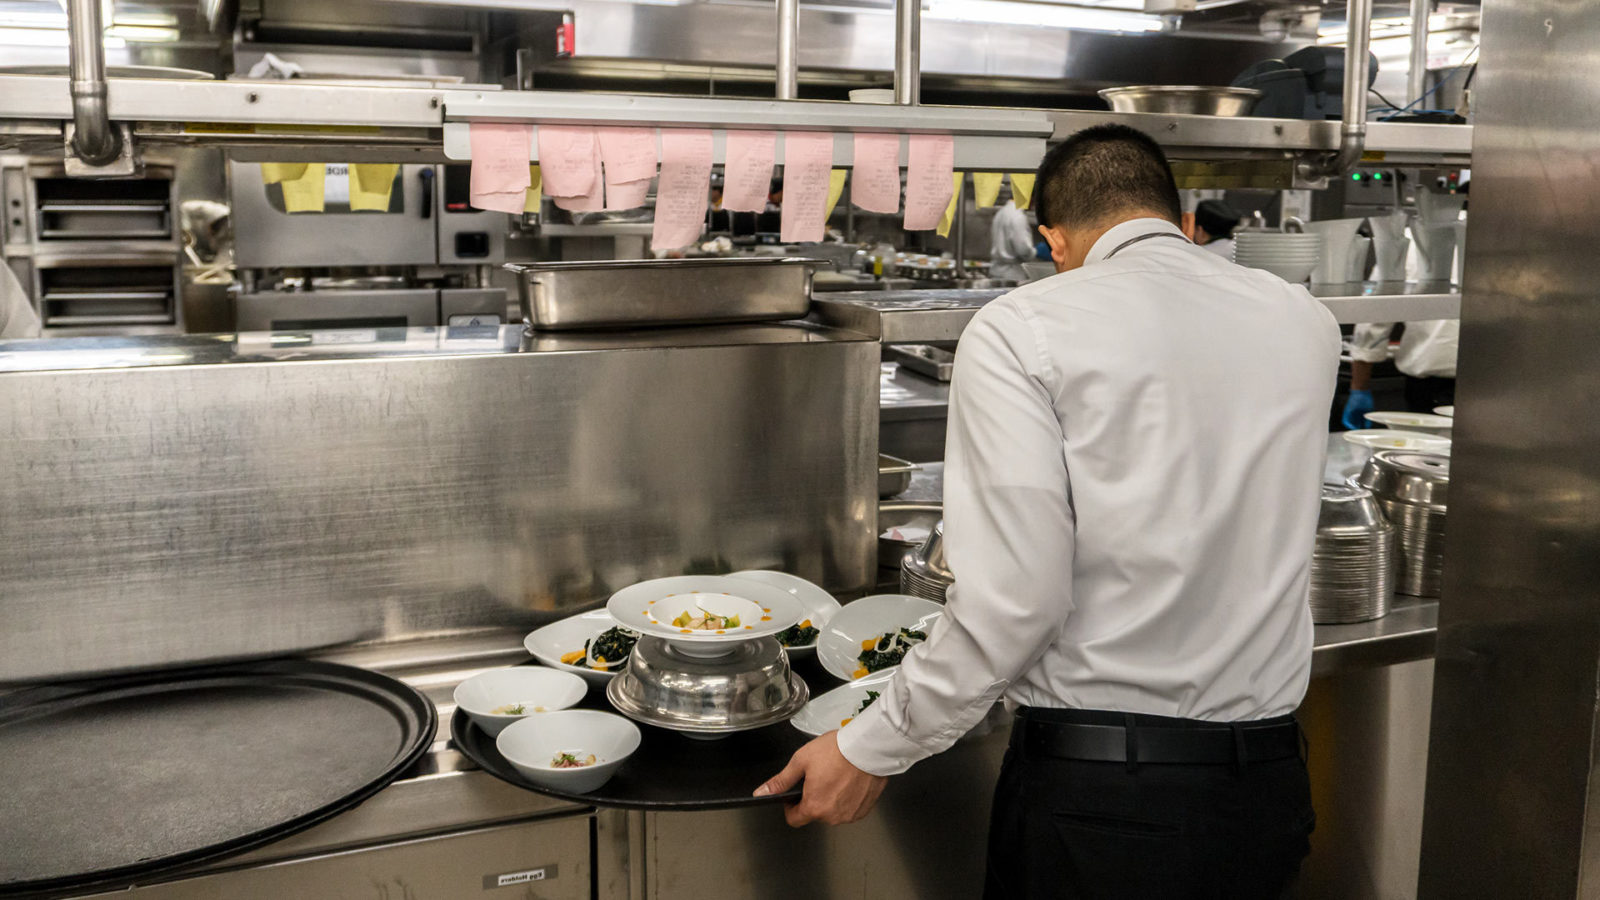 How To Avoid Common Restaurant Health Code Violations On The Line Toast Pos